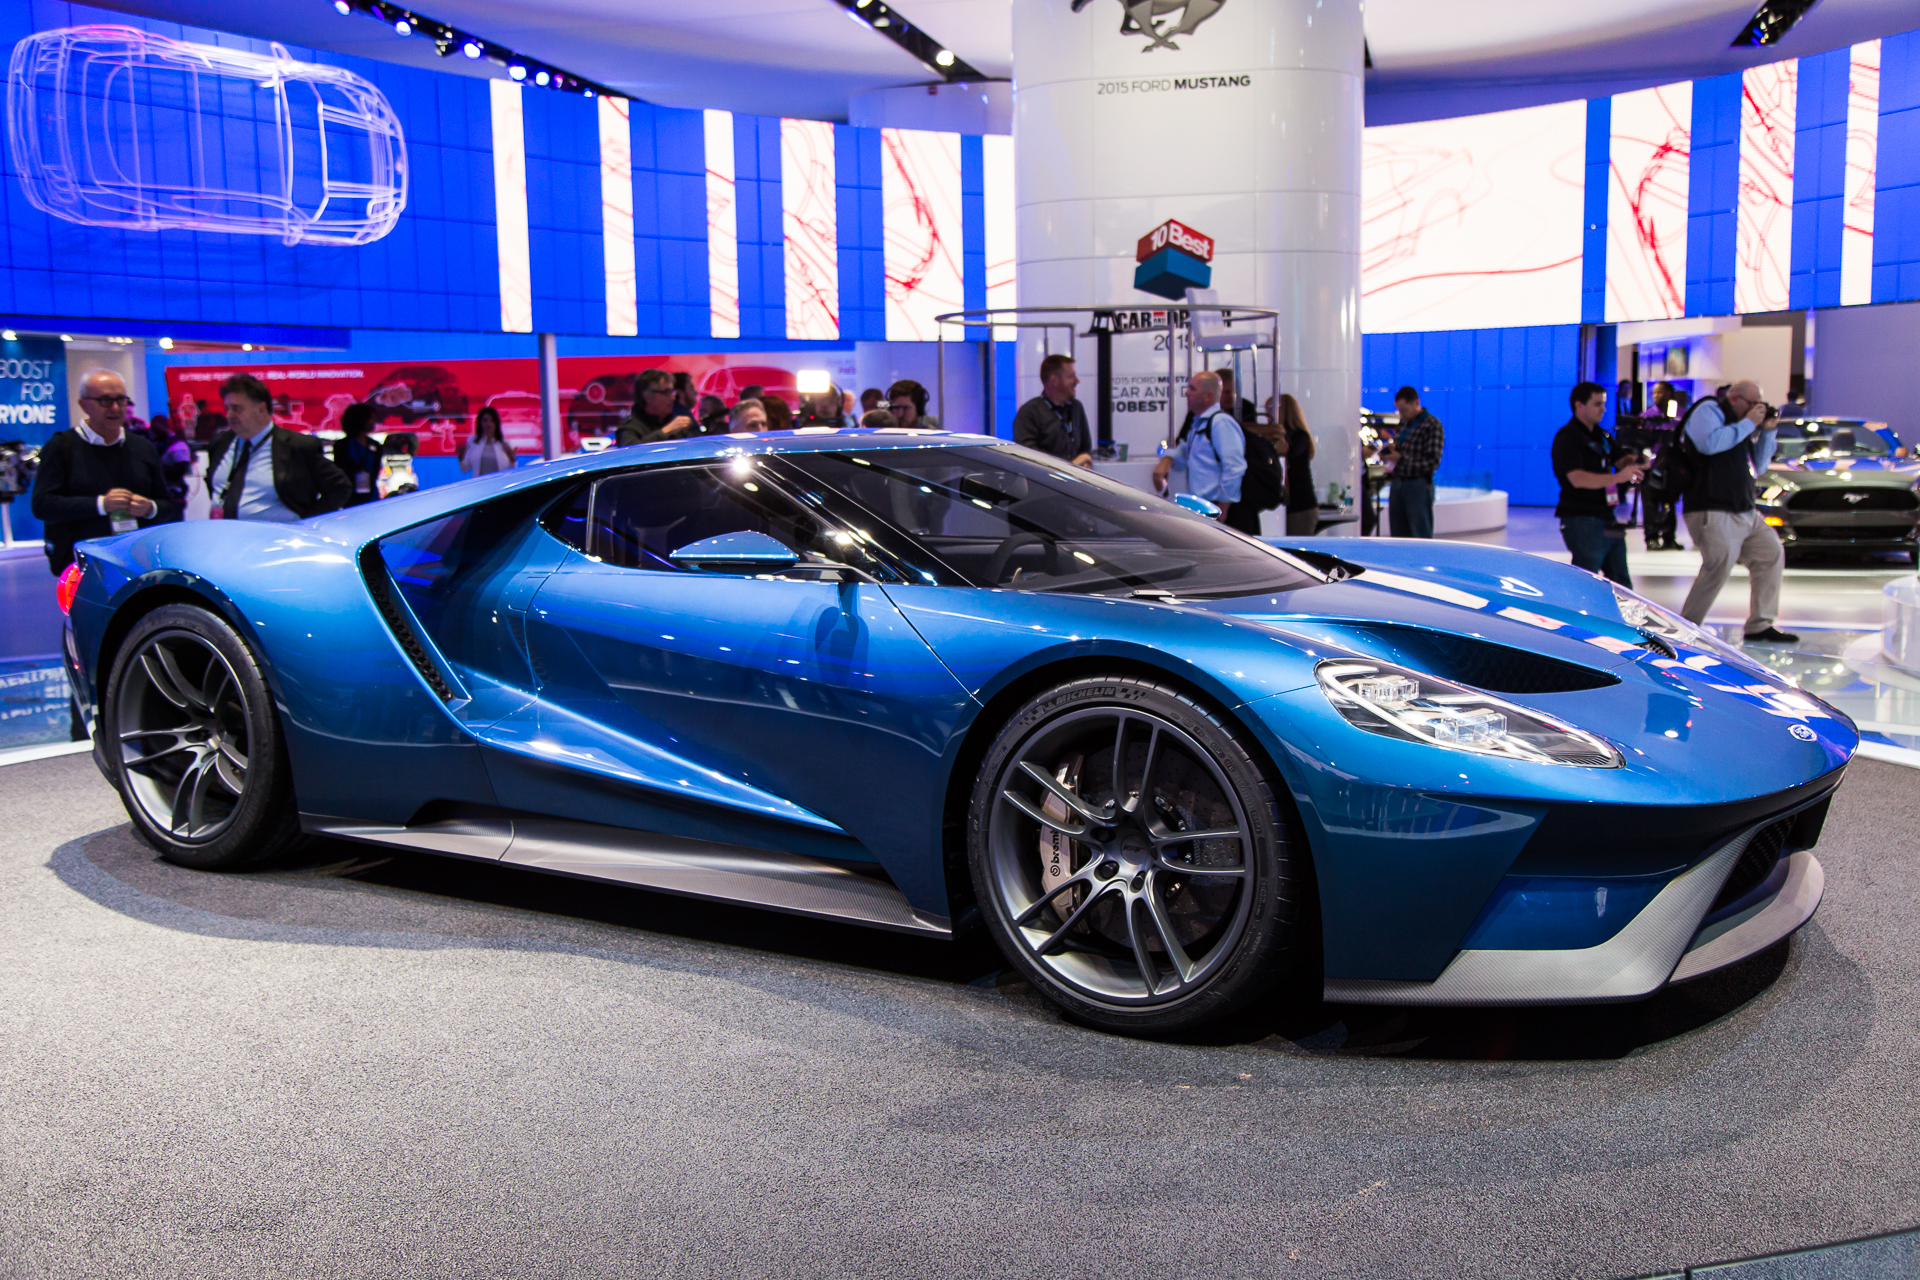 Ford Gt To Be Built In Markham Ontario Autos Ca